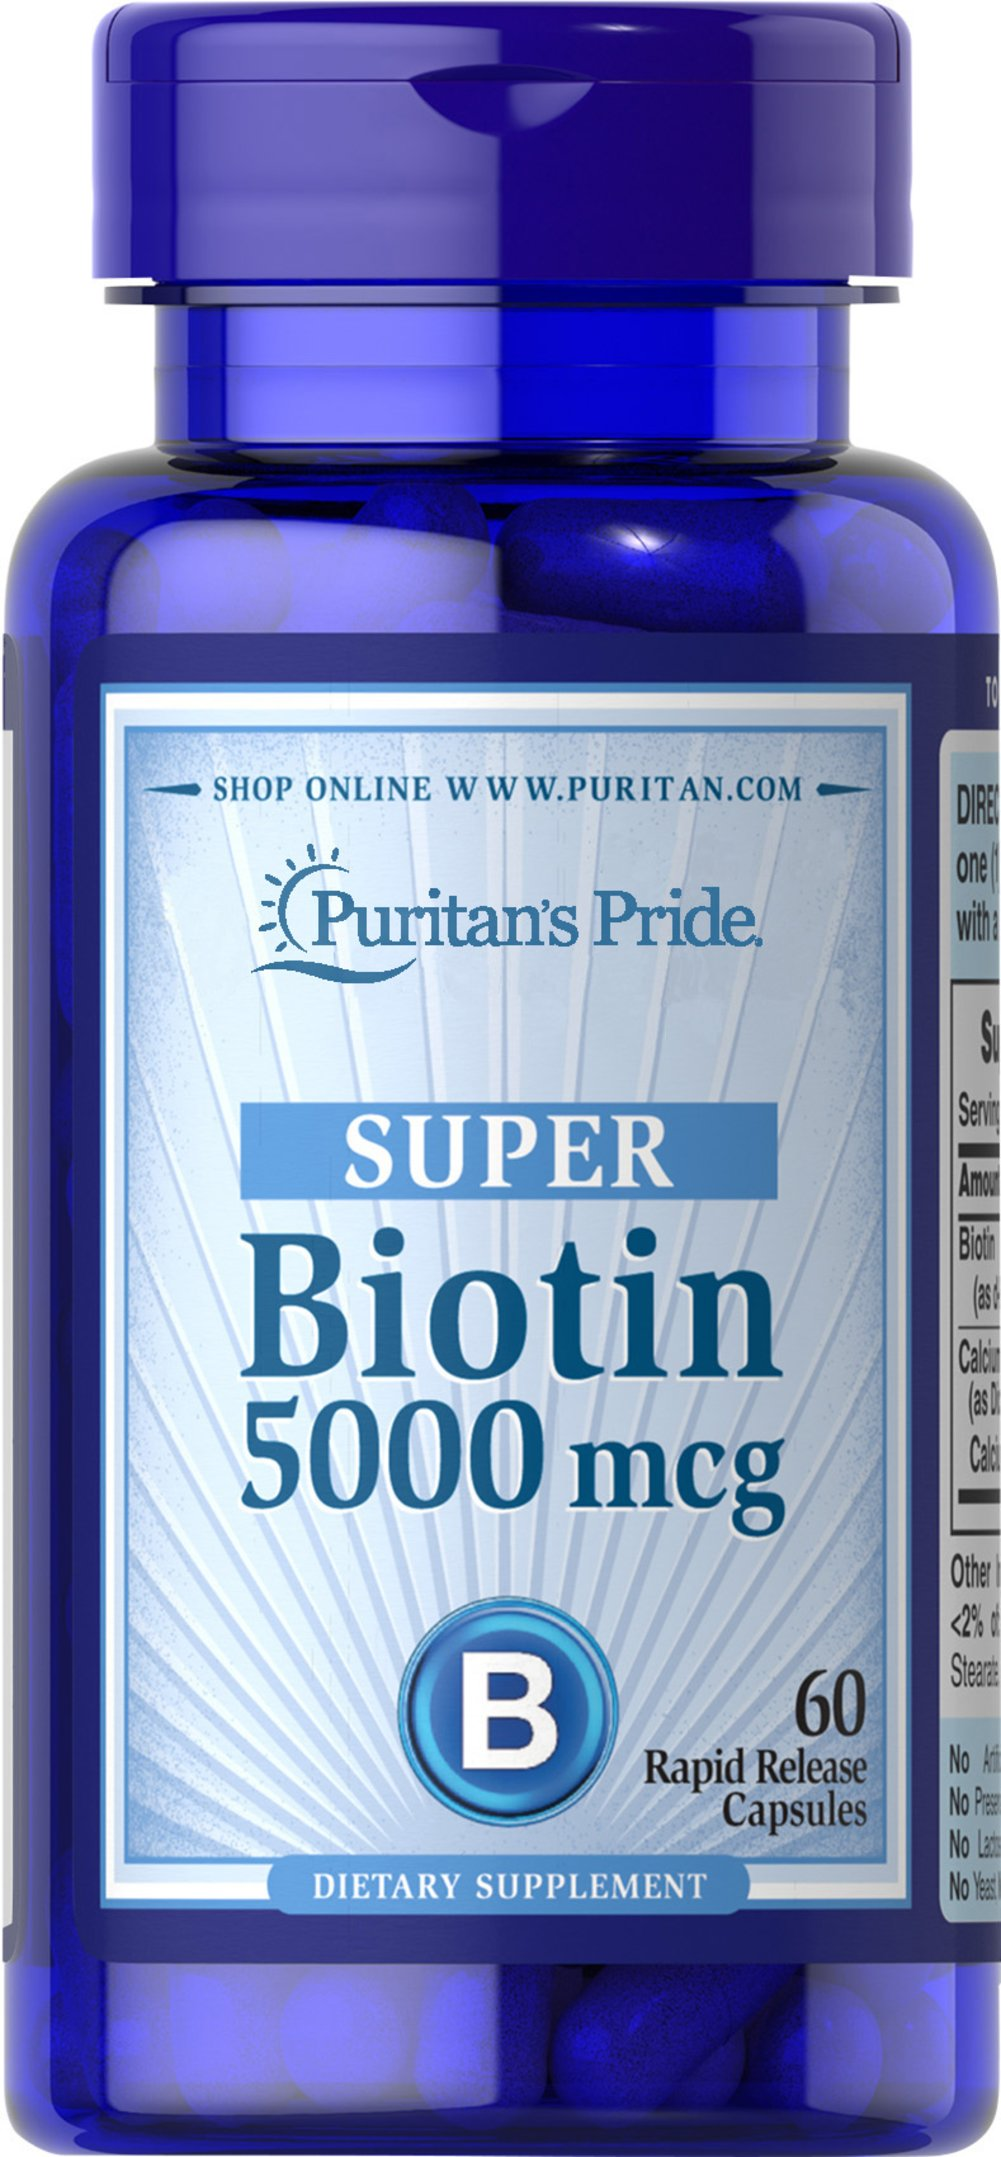 Biotin 5000 mcg <p>Supports Skin & Hair Health**</p><p>Found in foods such as oatmeal and soy, Biotin, a water-soluble B vitamin, assists in energy metabolism in cells.** Biotin helps to support healthy skin and hair.**</p> 60 Capsules 5000 mcg $6.49